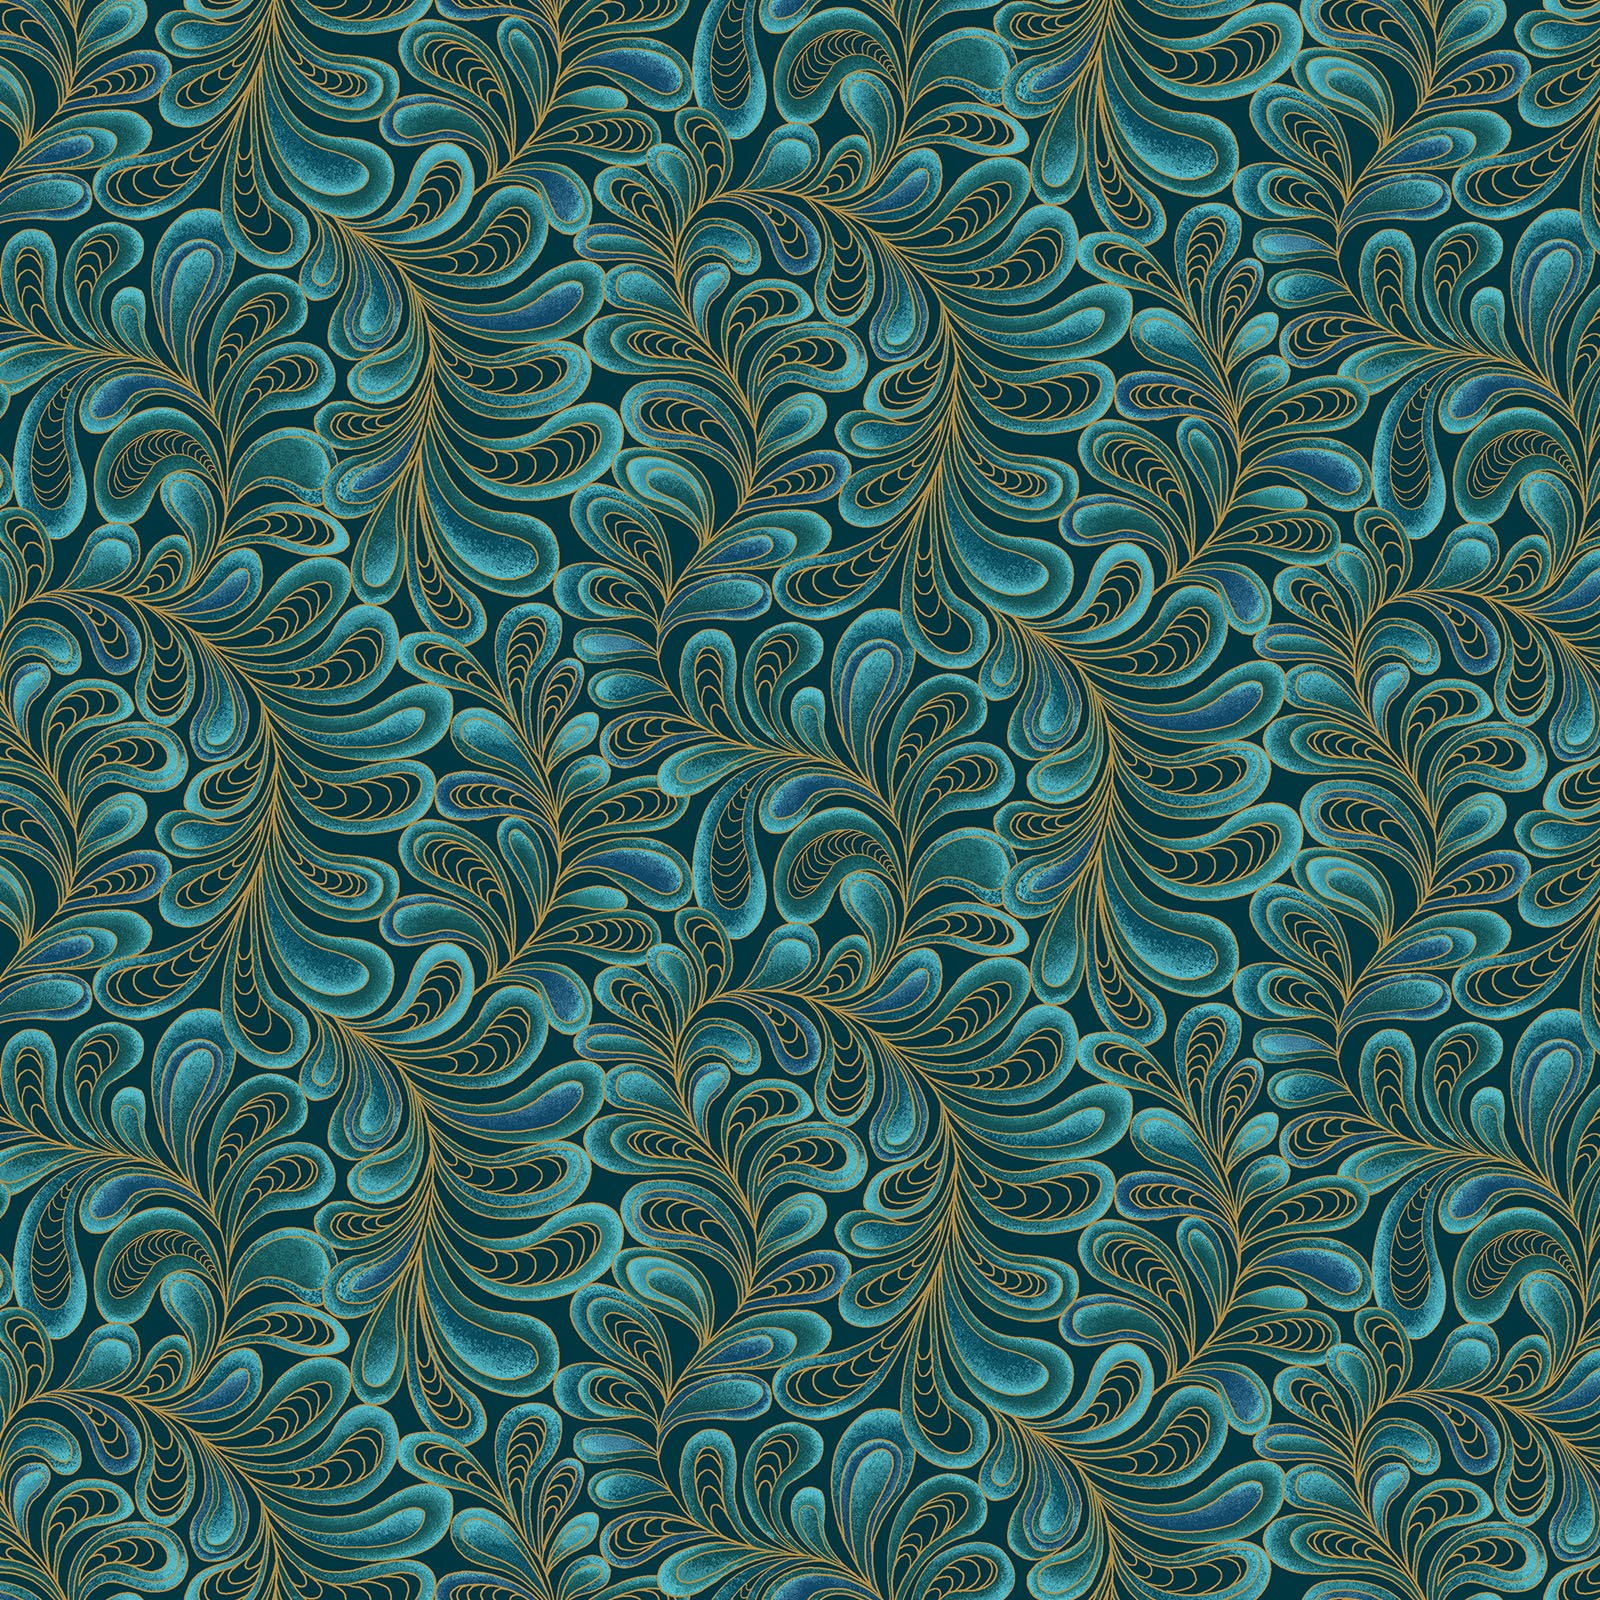 Feather Frolic Teal<br/>Benartex 4205M-54